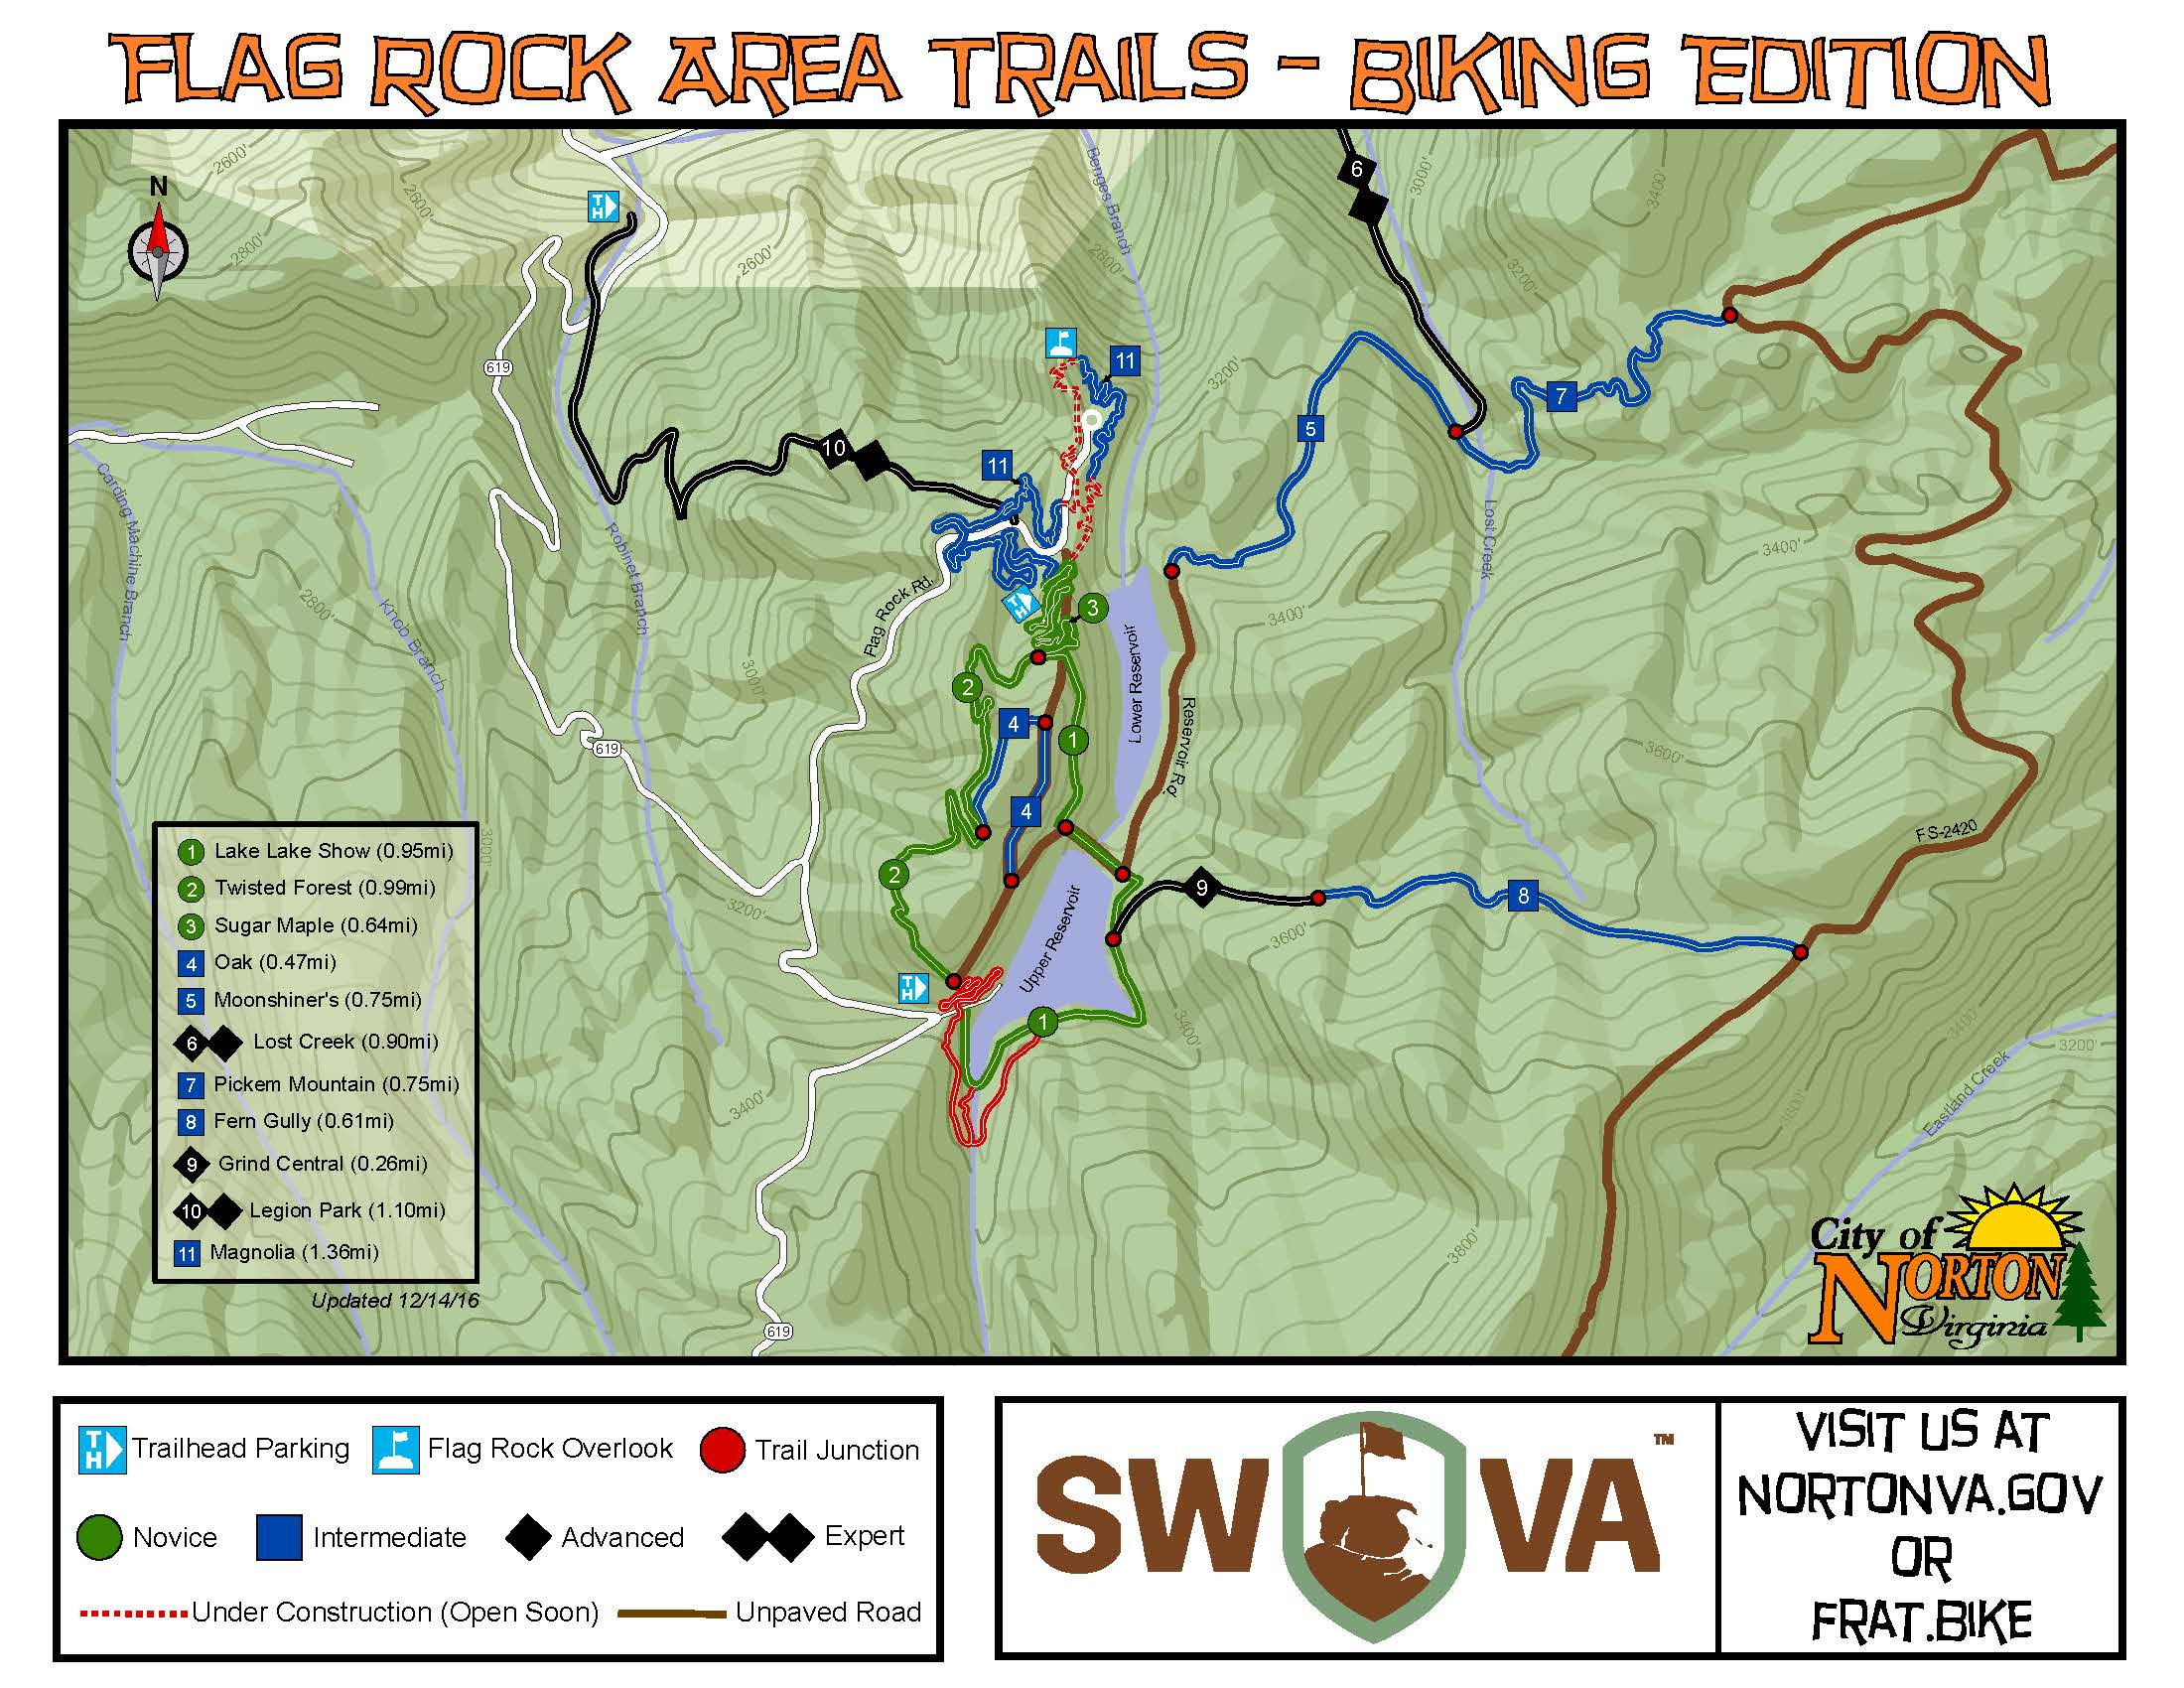 Picture of Flag Rock Area Trails system map